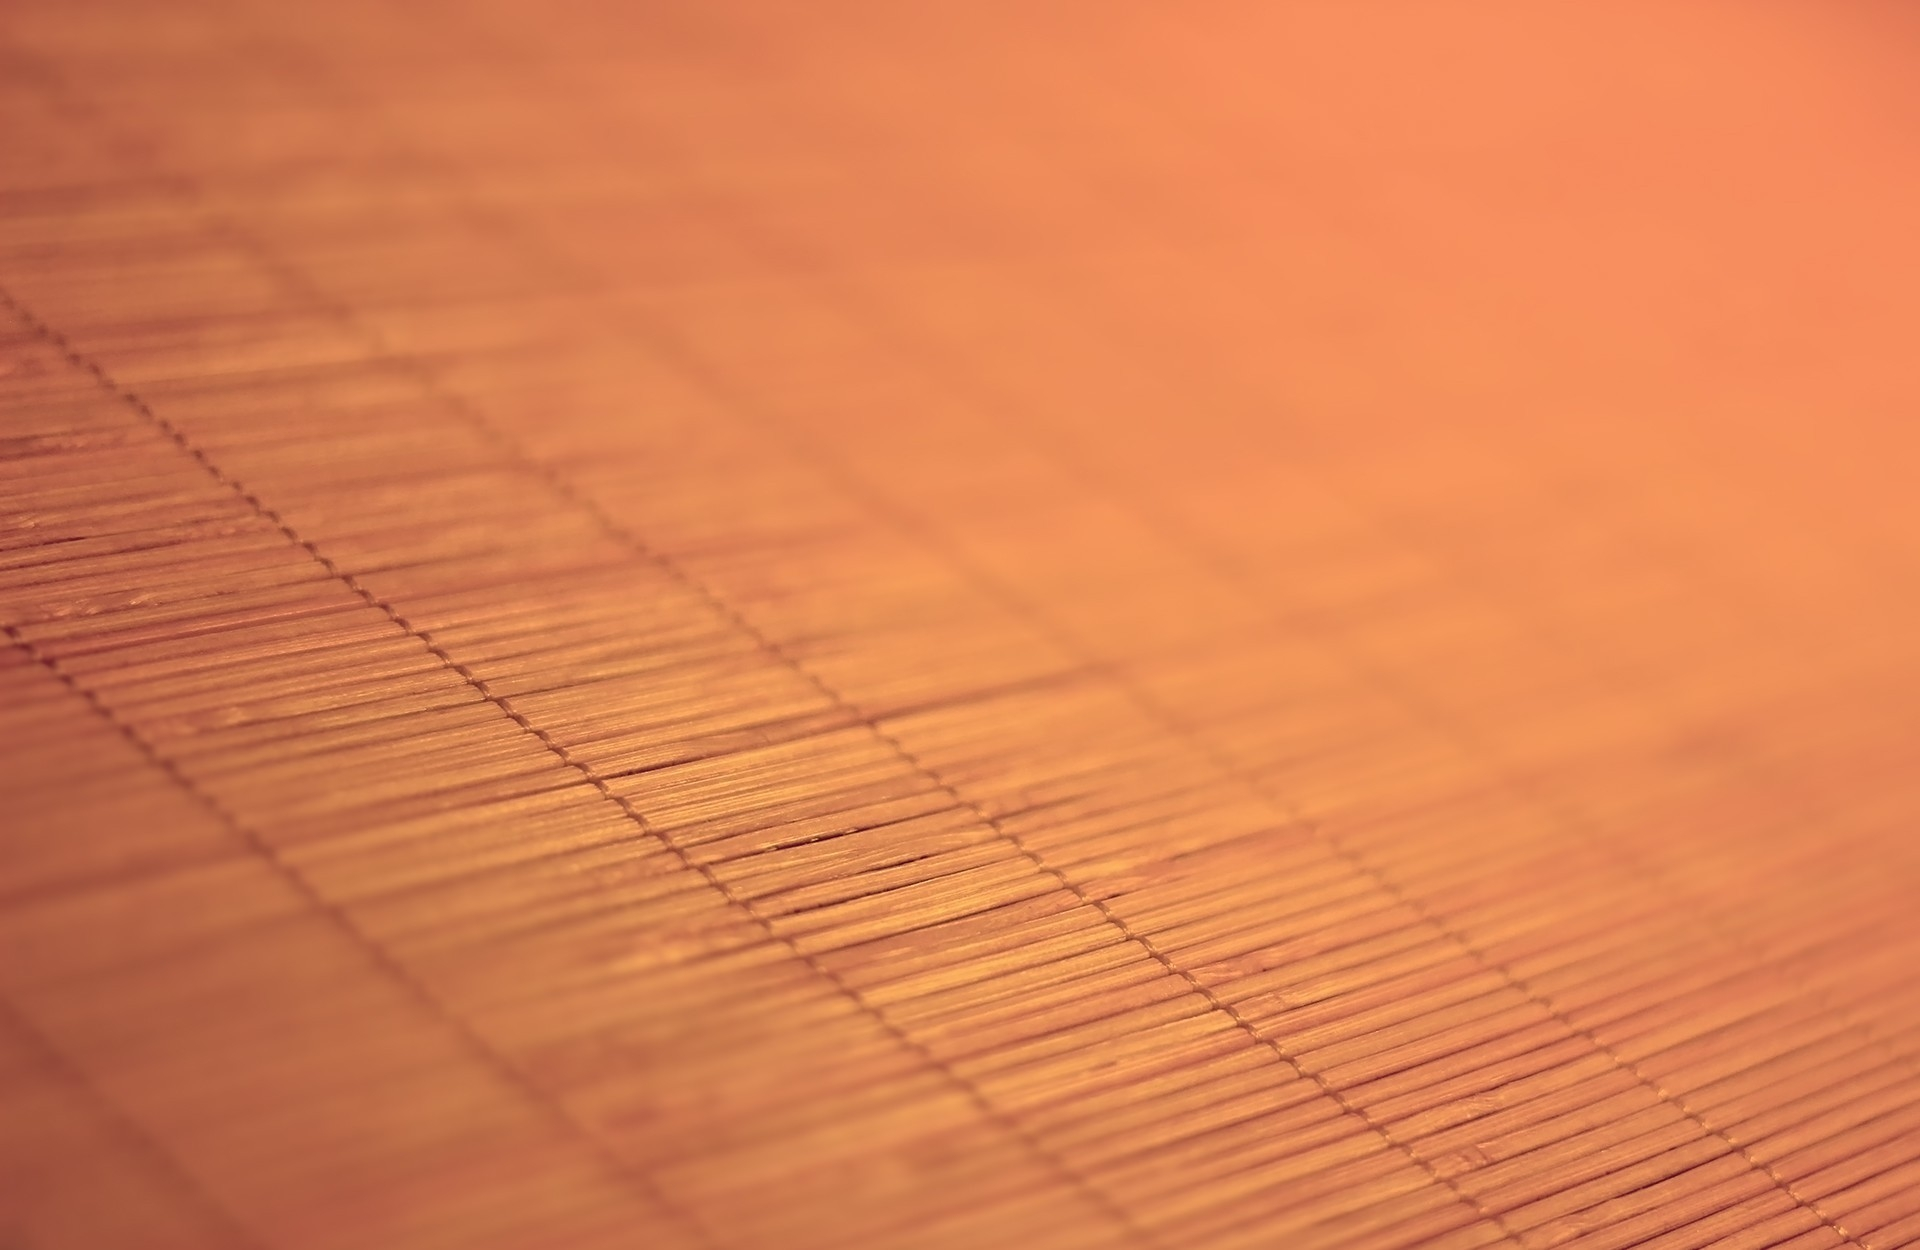 68258 download wallpaper Textures, Texture, Mat, Bamboo, Stems, Focus screensavers and pictures for free